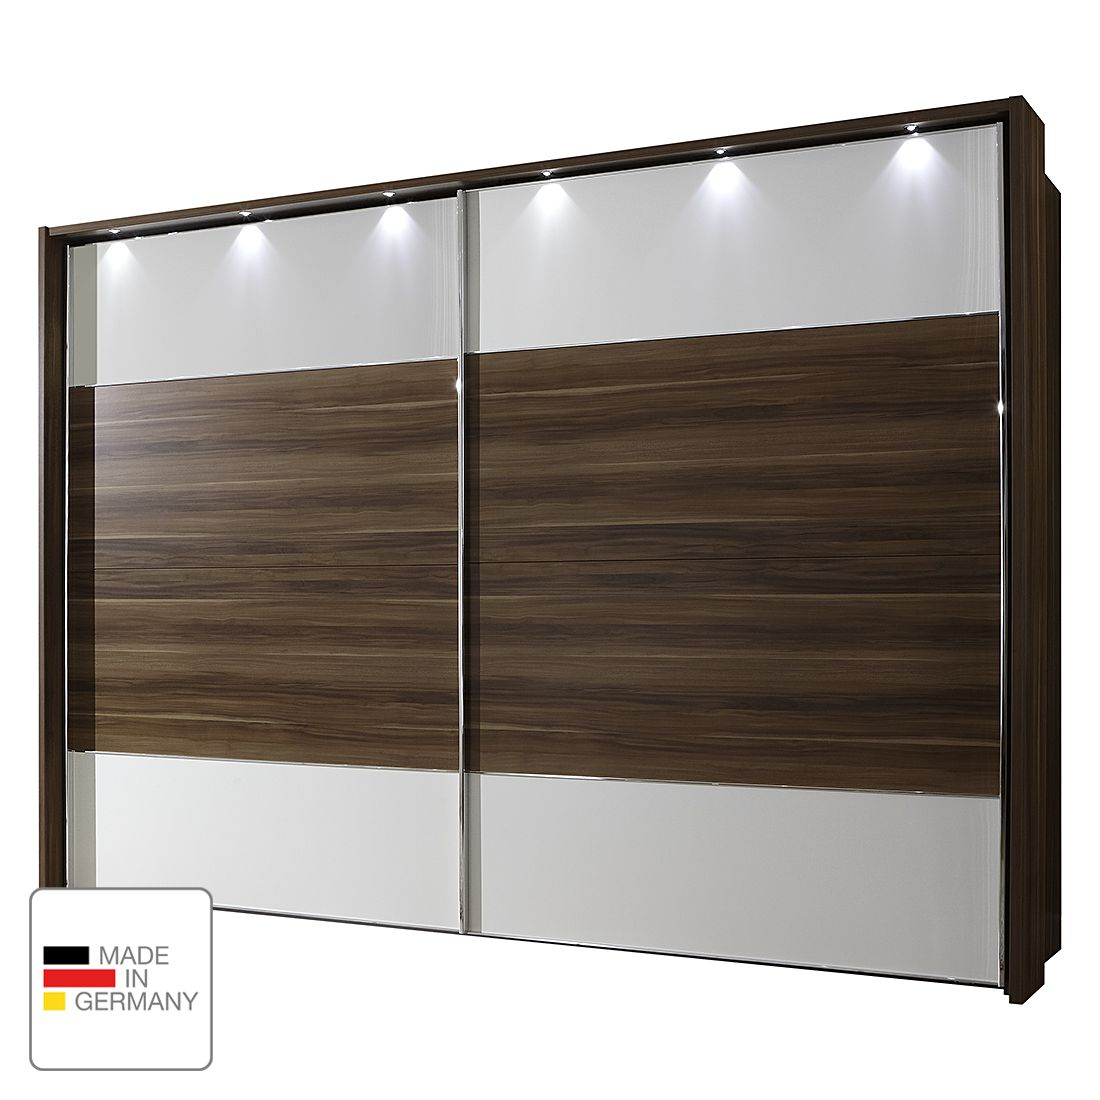 eek a schwebet renschrank monza walnuss dekor alpinwei led beleuchtung 200 cm 2 t rig. Black Bedroom Furniture Sets. Home Design Ideas